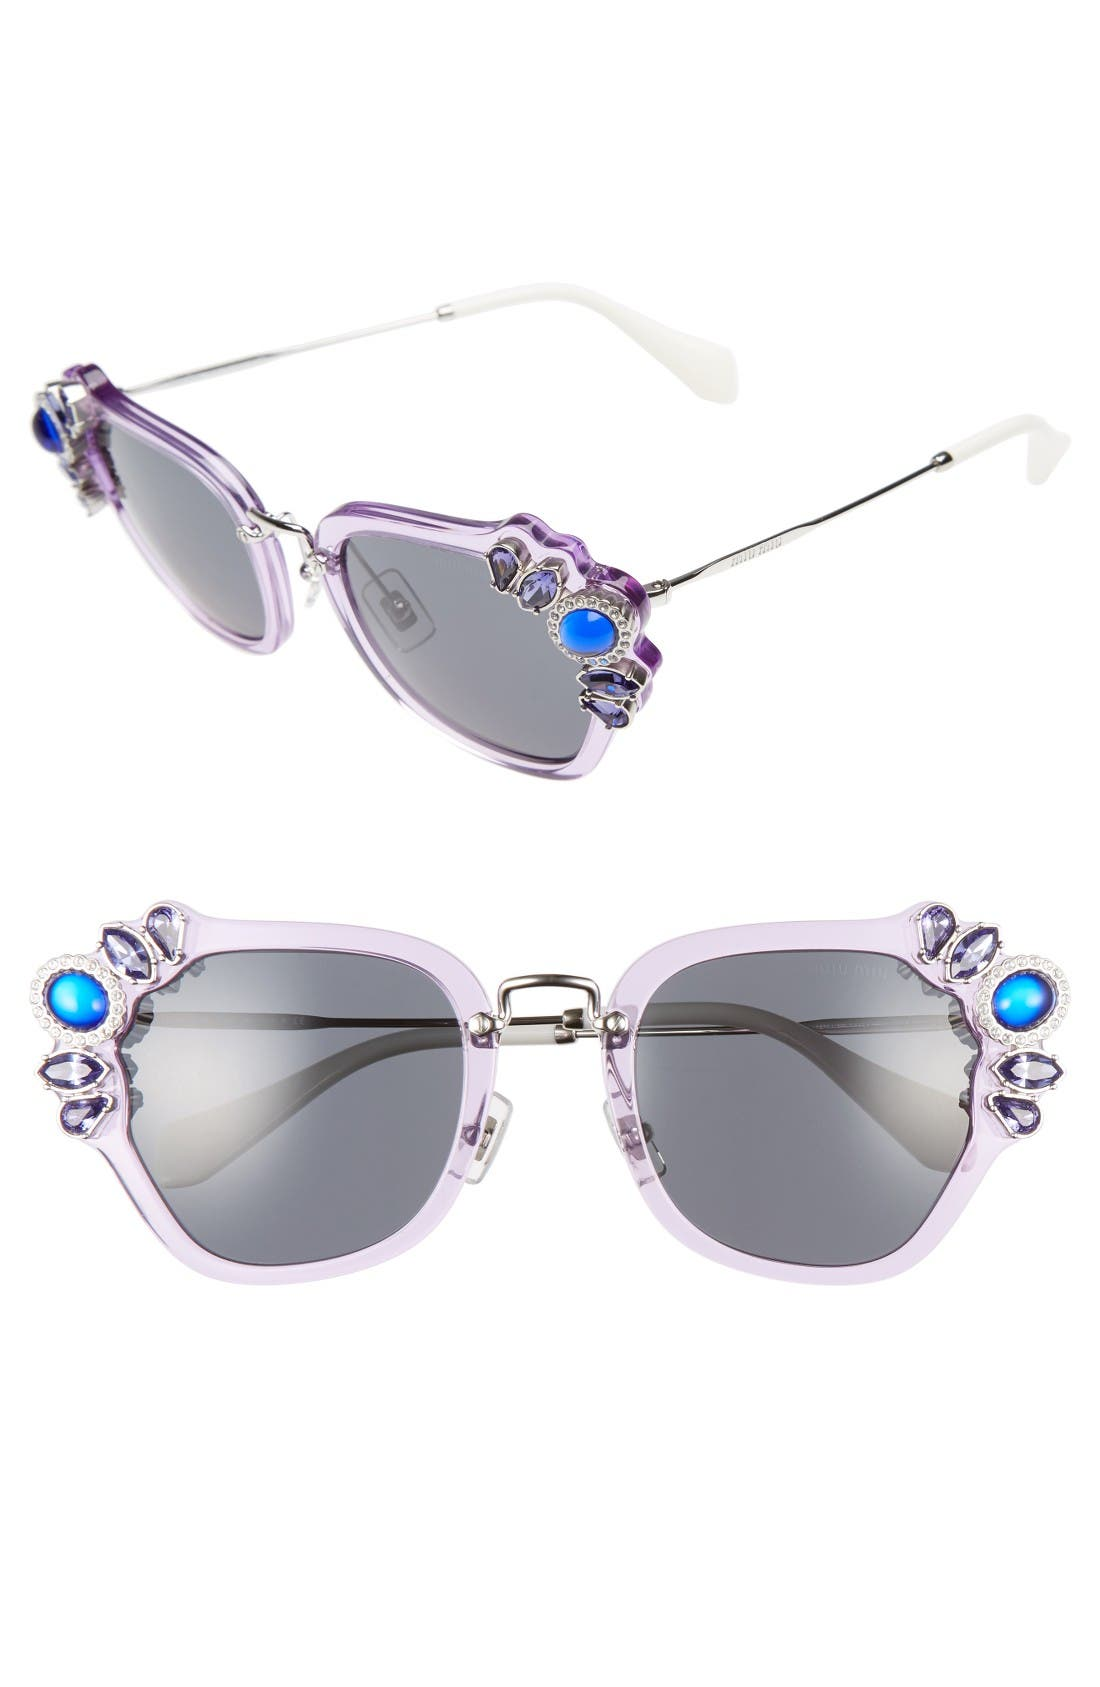 MIU MIU 51mm Embellished Sunglasses